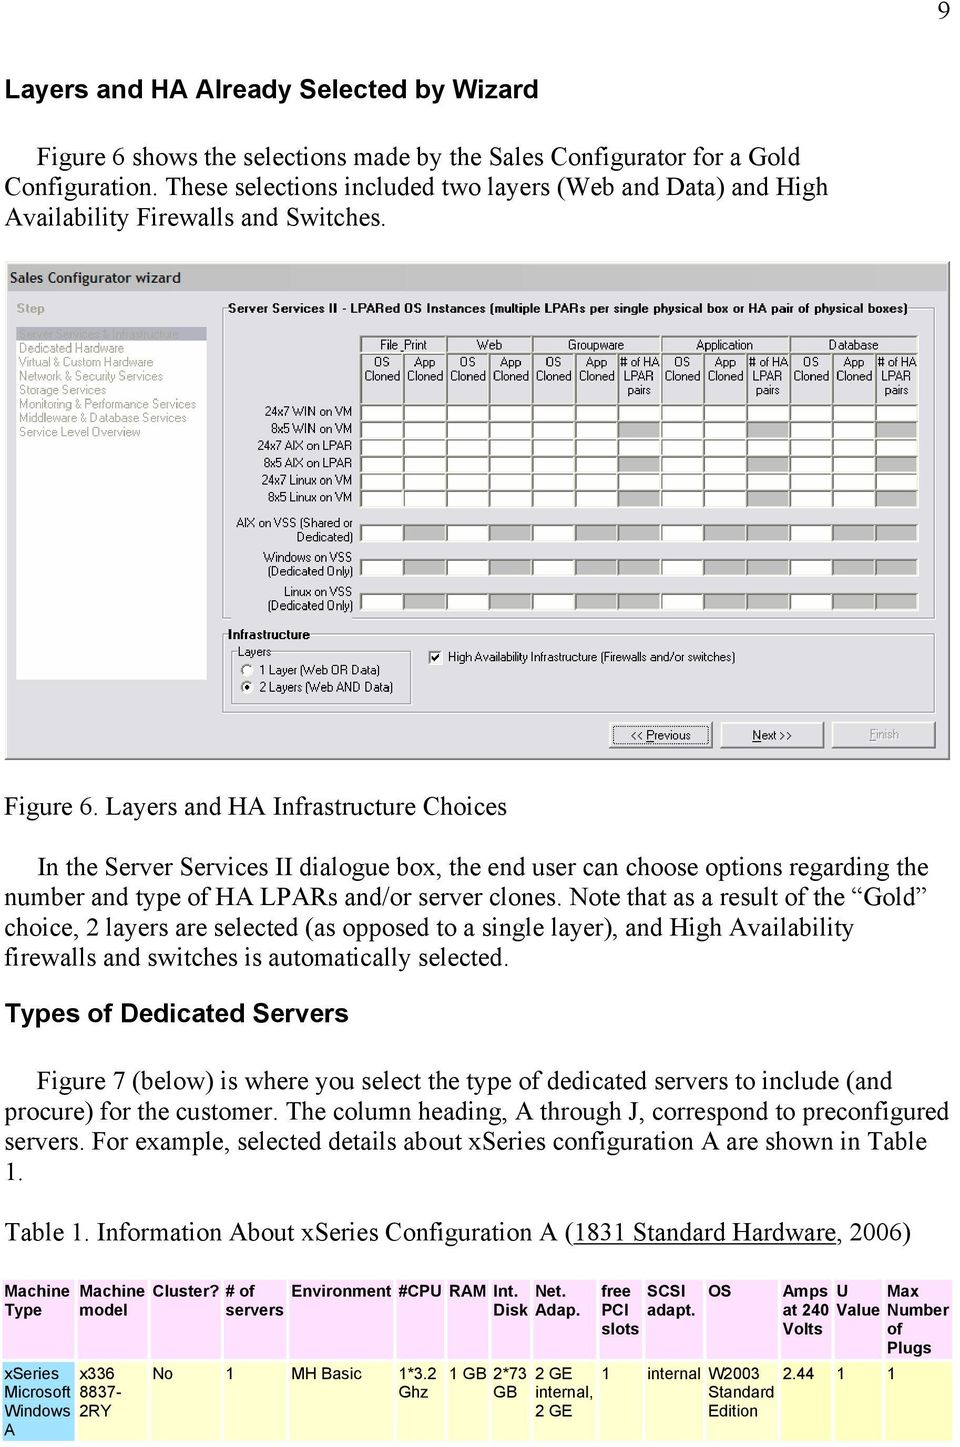 Layers and HA Infrastructure Choices In the Server Services II dialogue box, the end user can choose options regarding the number and type of HA LPARs and/or server clones.